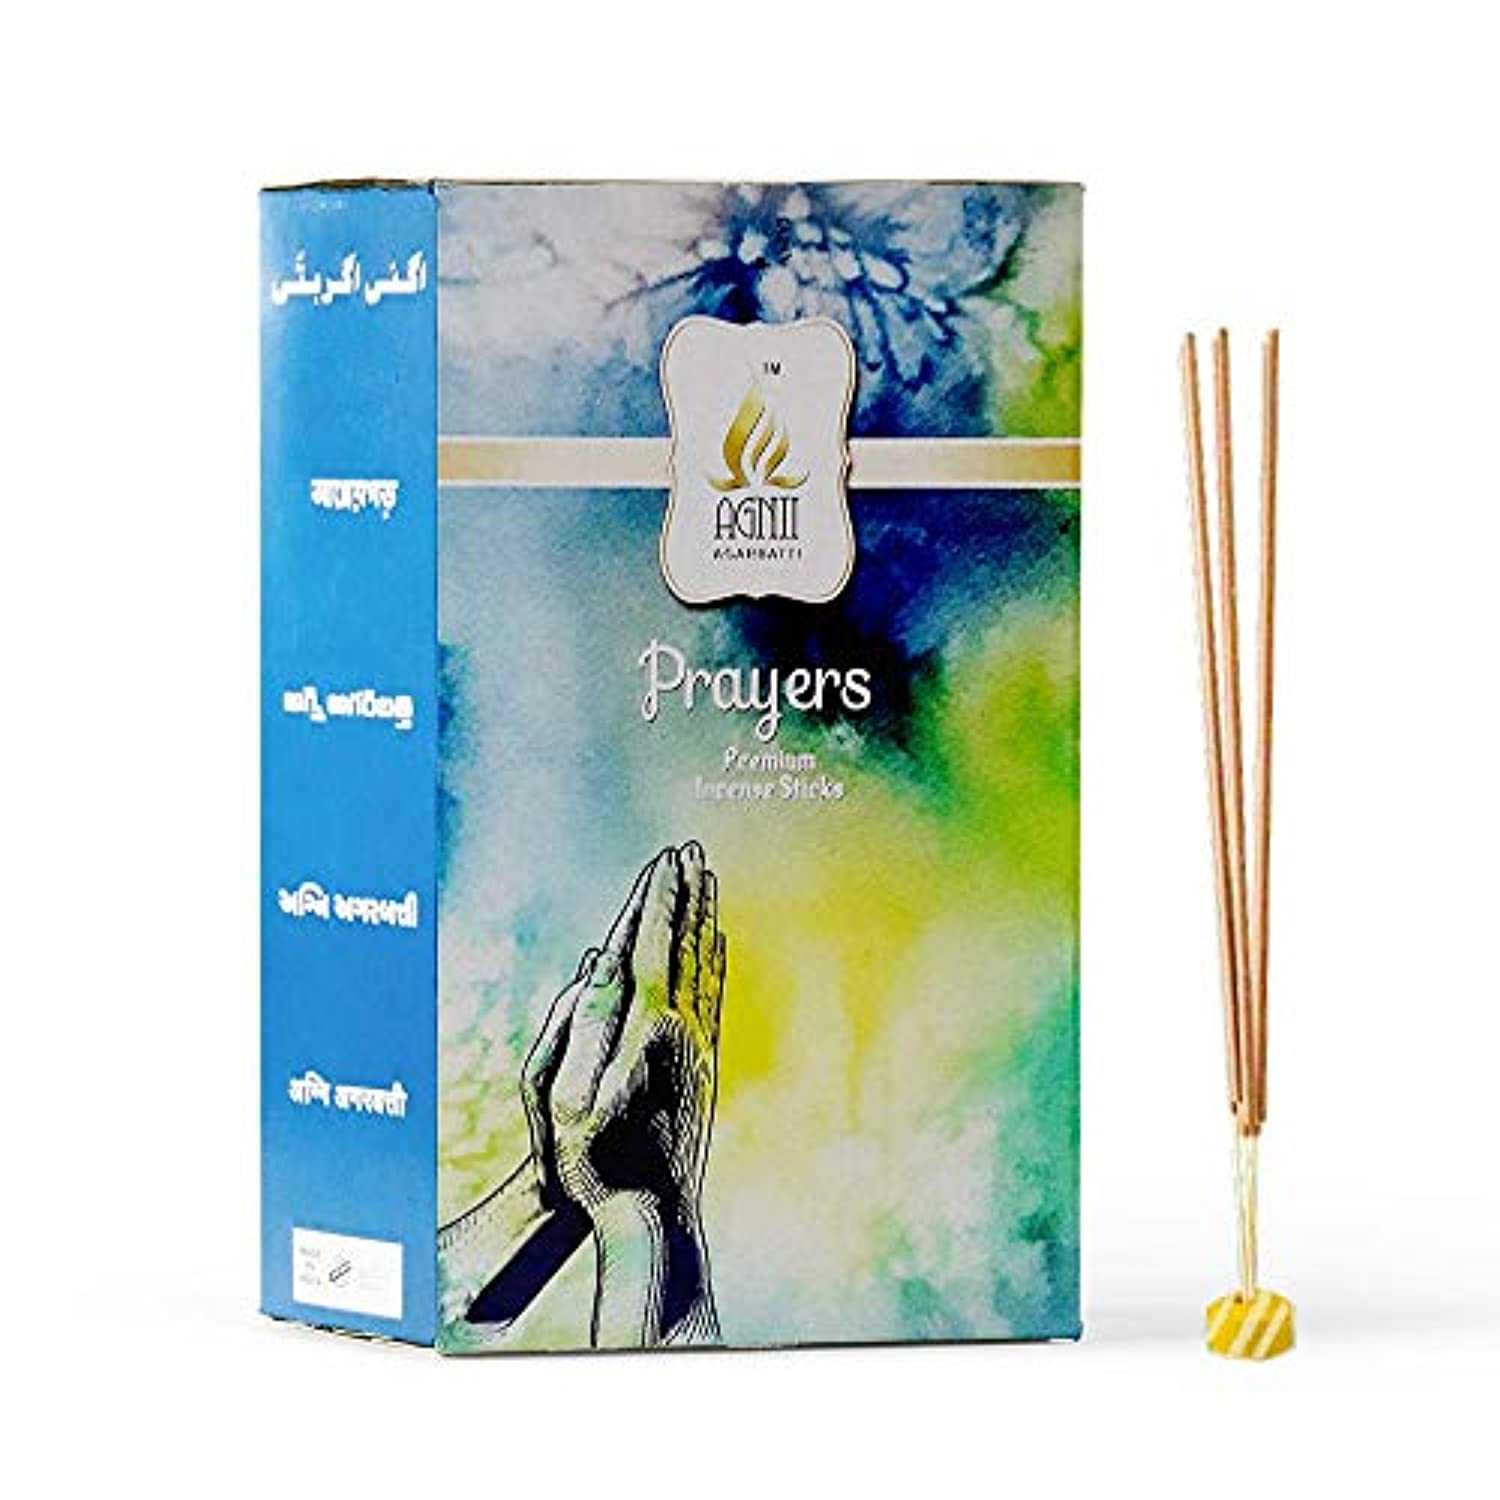 機会マンハッタンタービンAGNII AGARBATTI Prayers Incense Sticks (18 GRM_Brown) Pack of 12